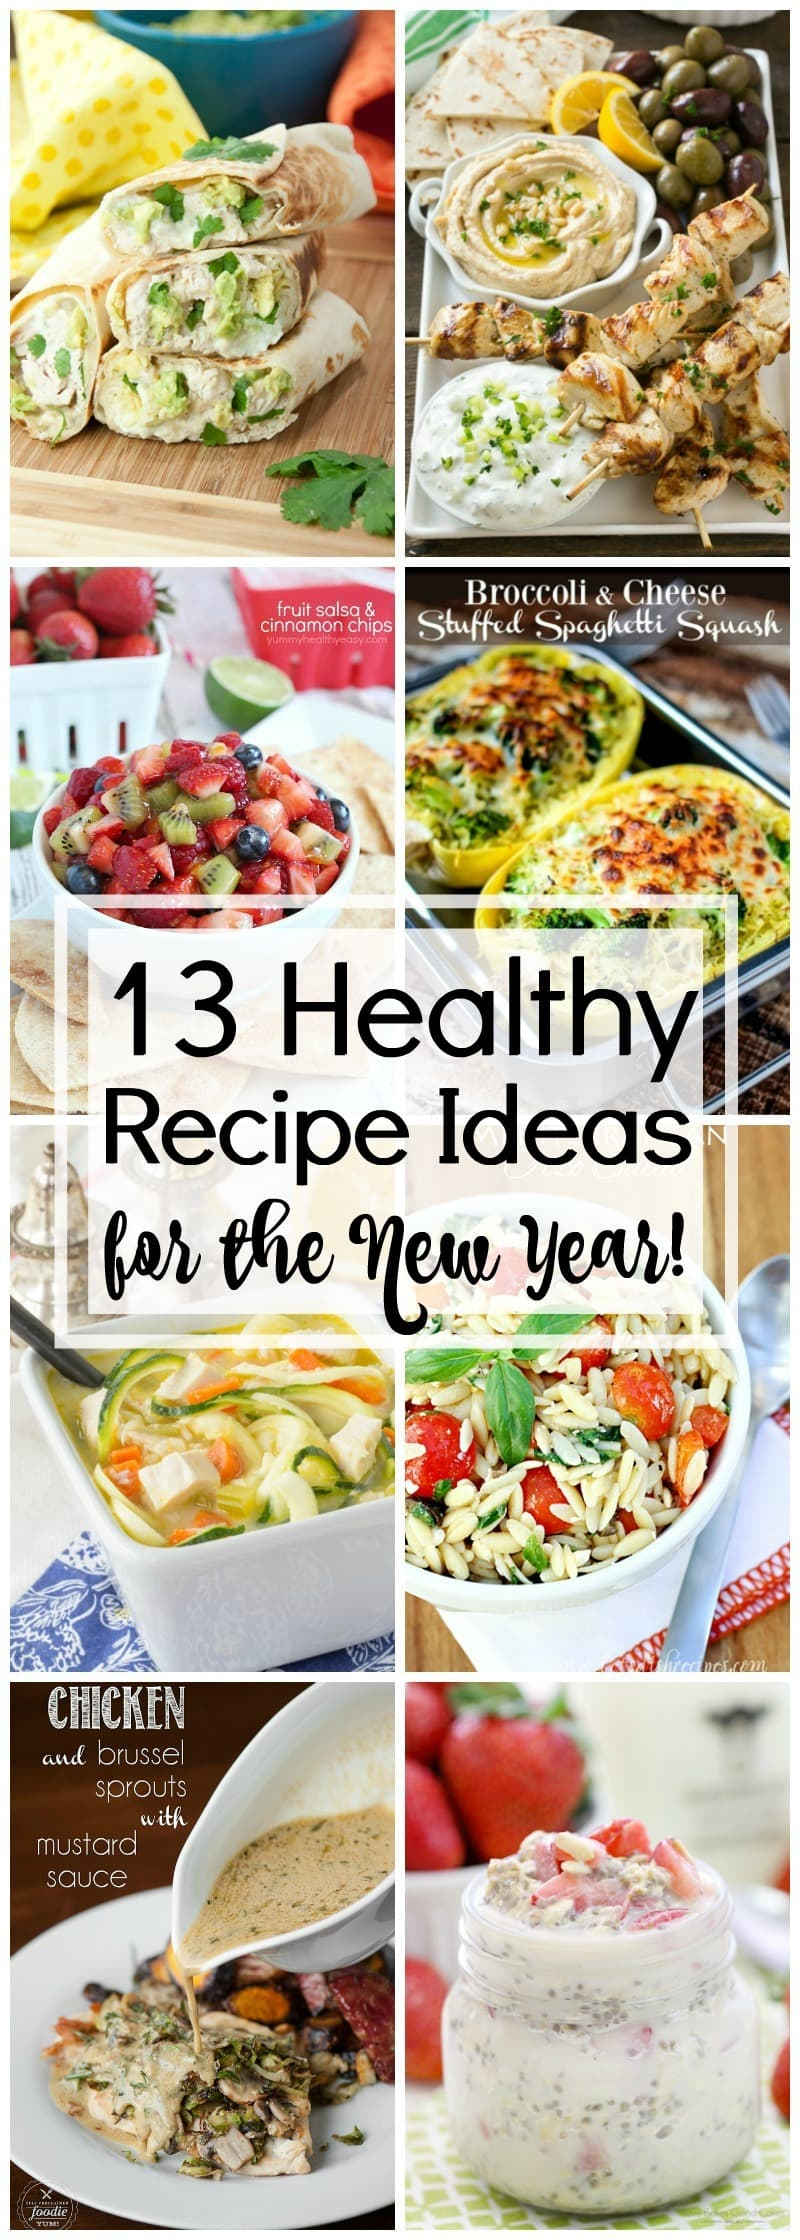 13+ Healthy Recipe Ideas for the New Year! Get healthy in 2017 by eating healthier! Here are some delicious and healthy recipe ideas that will get you started on a healthier eating path!